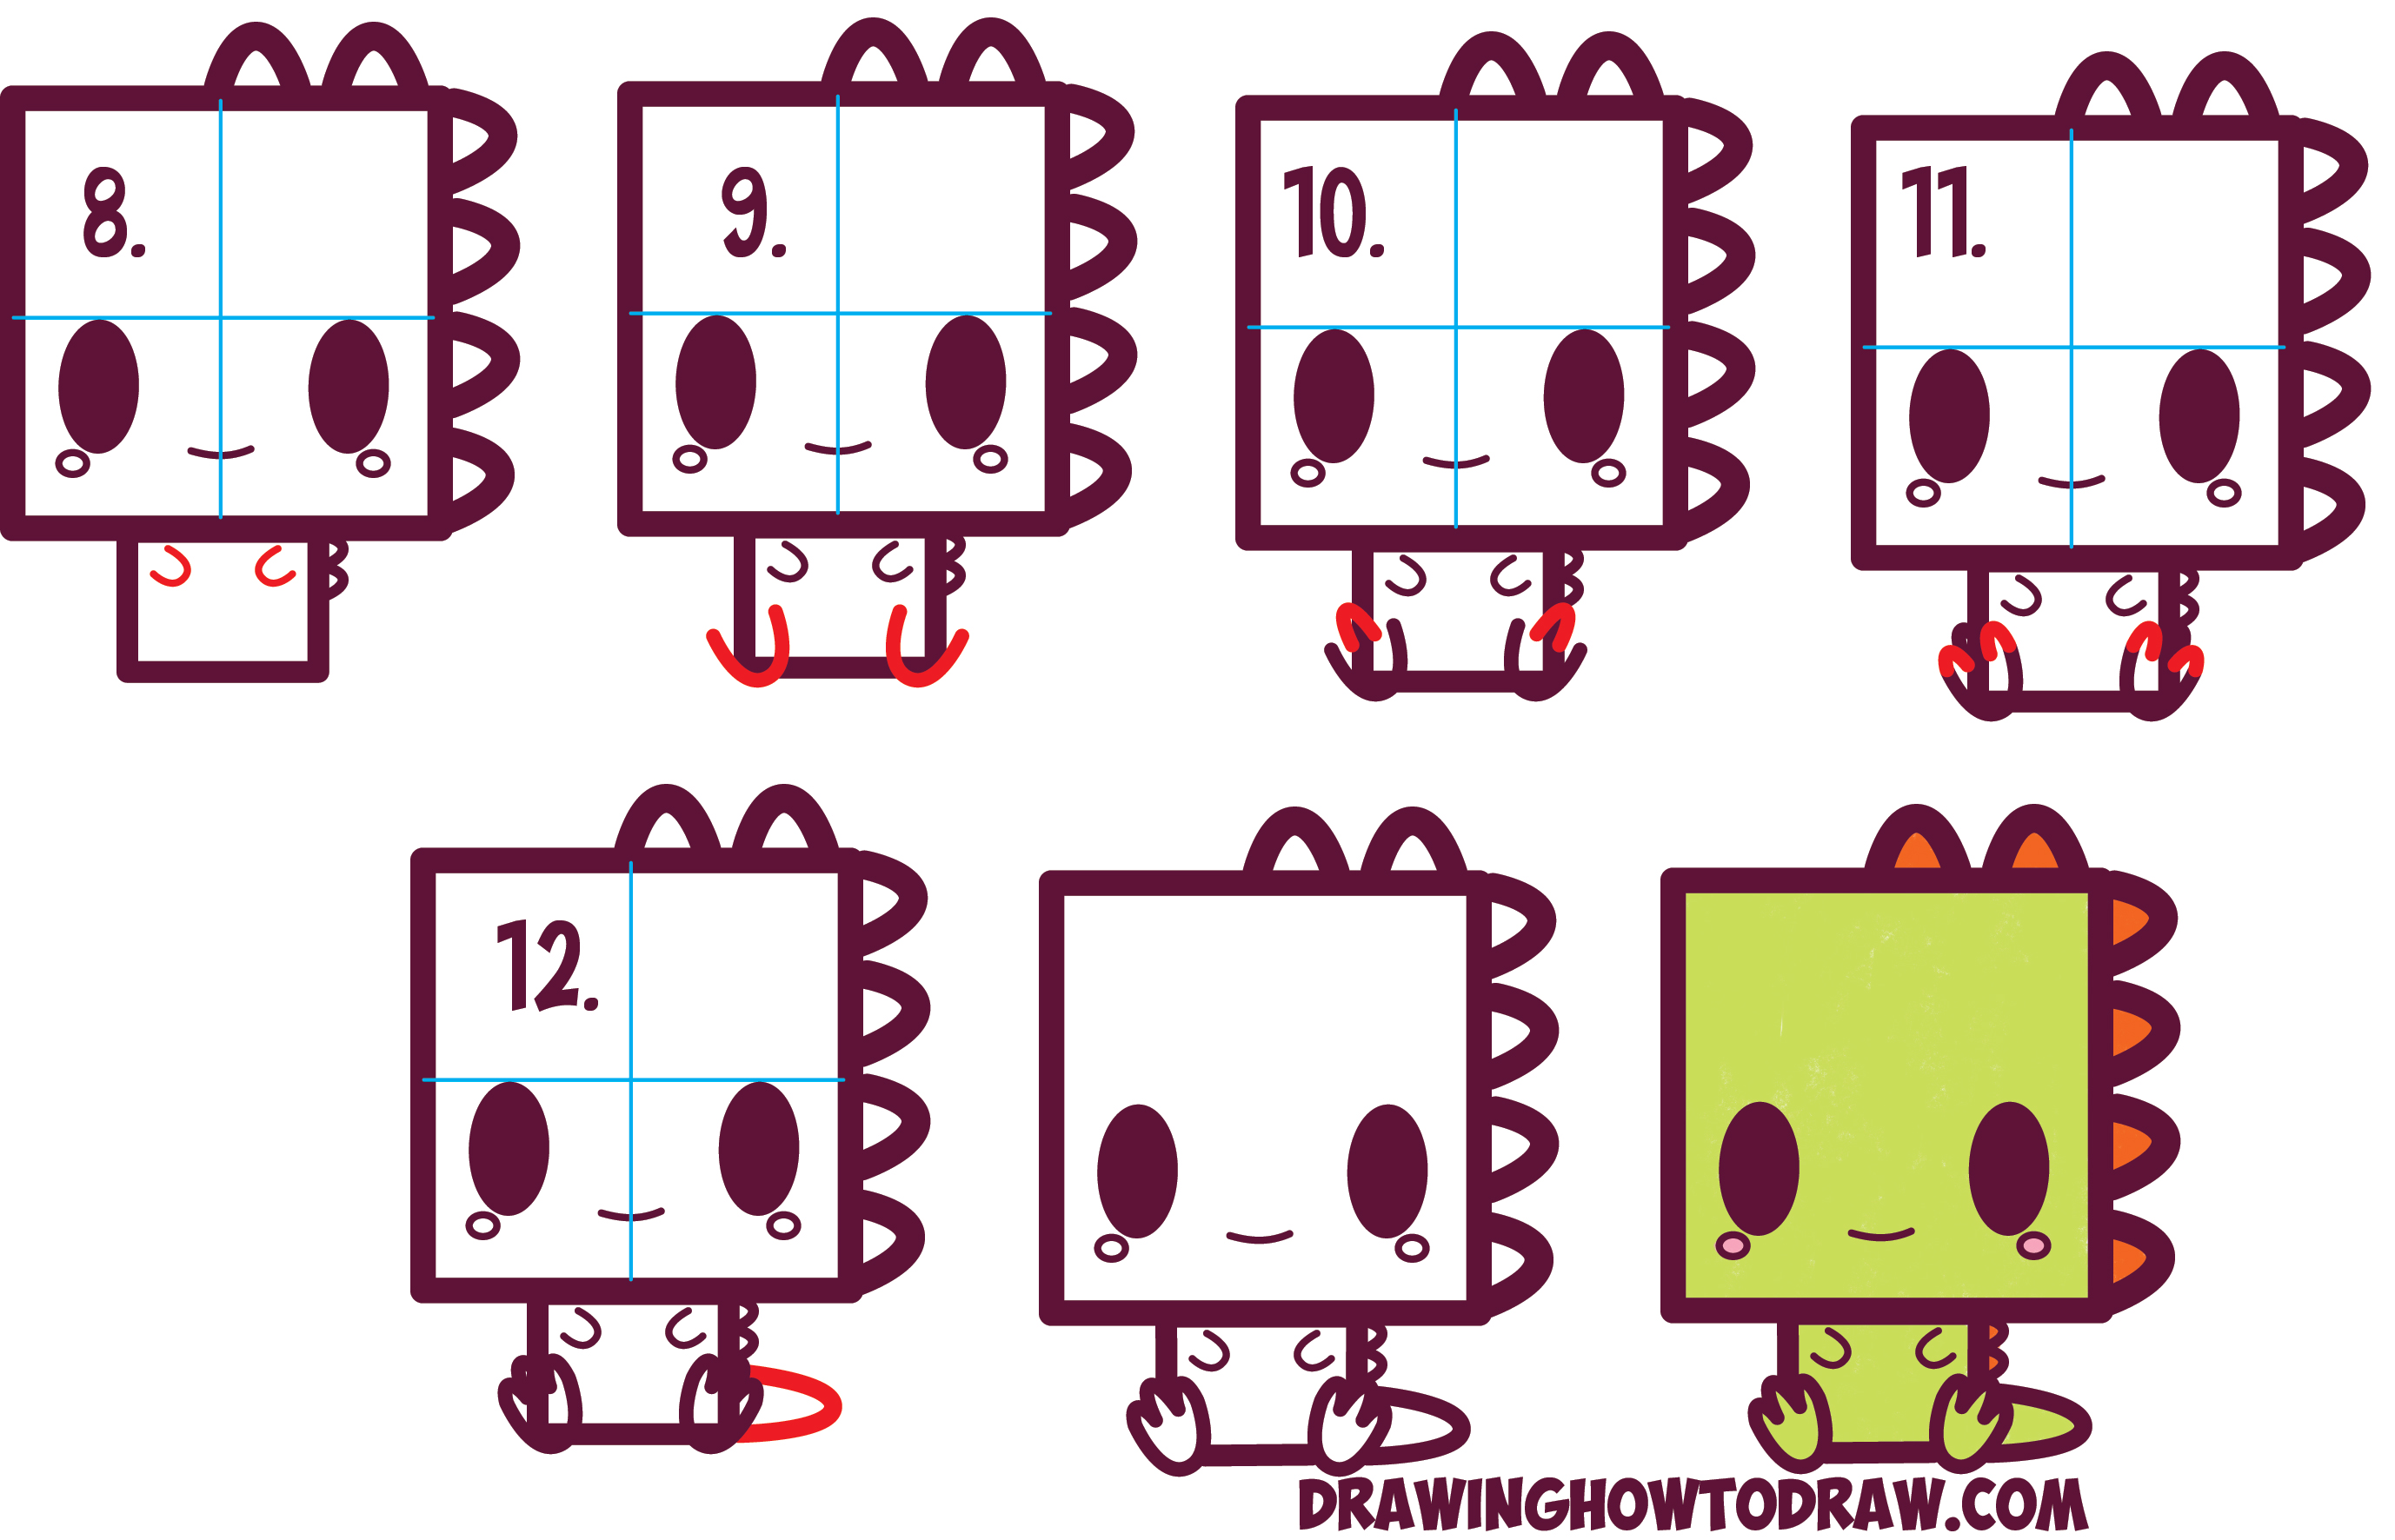 Learn How to Draw Cute / Kawaii / Cartoon Dinosaur from Squares with Simple Steps Drawing Lesson for Kids and Beginners